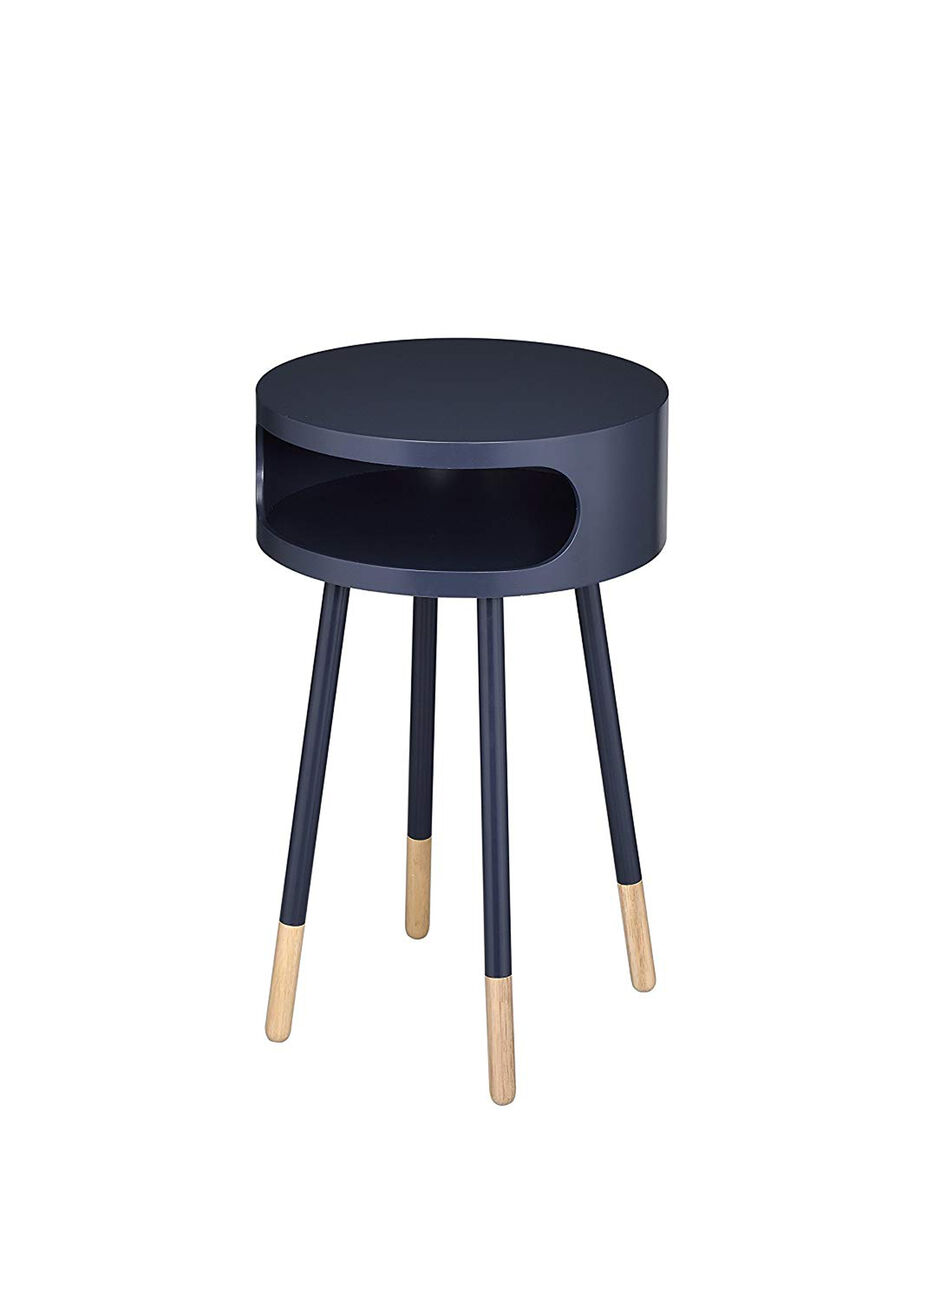 Sonria Round End Table, Black & Natural